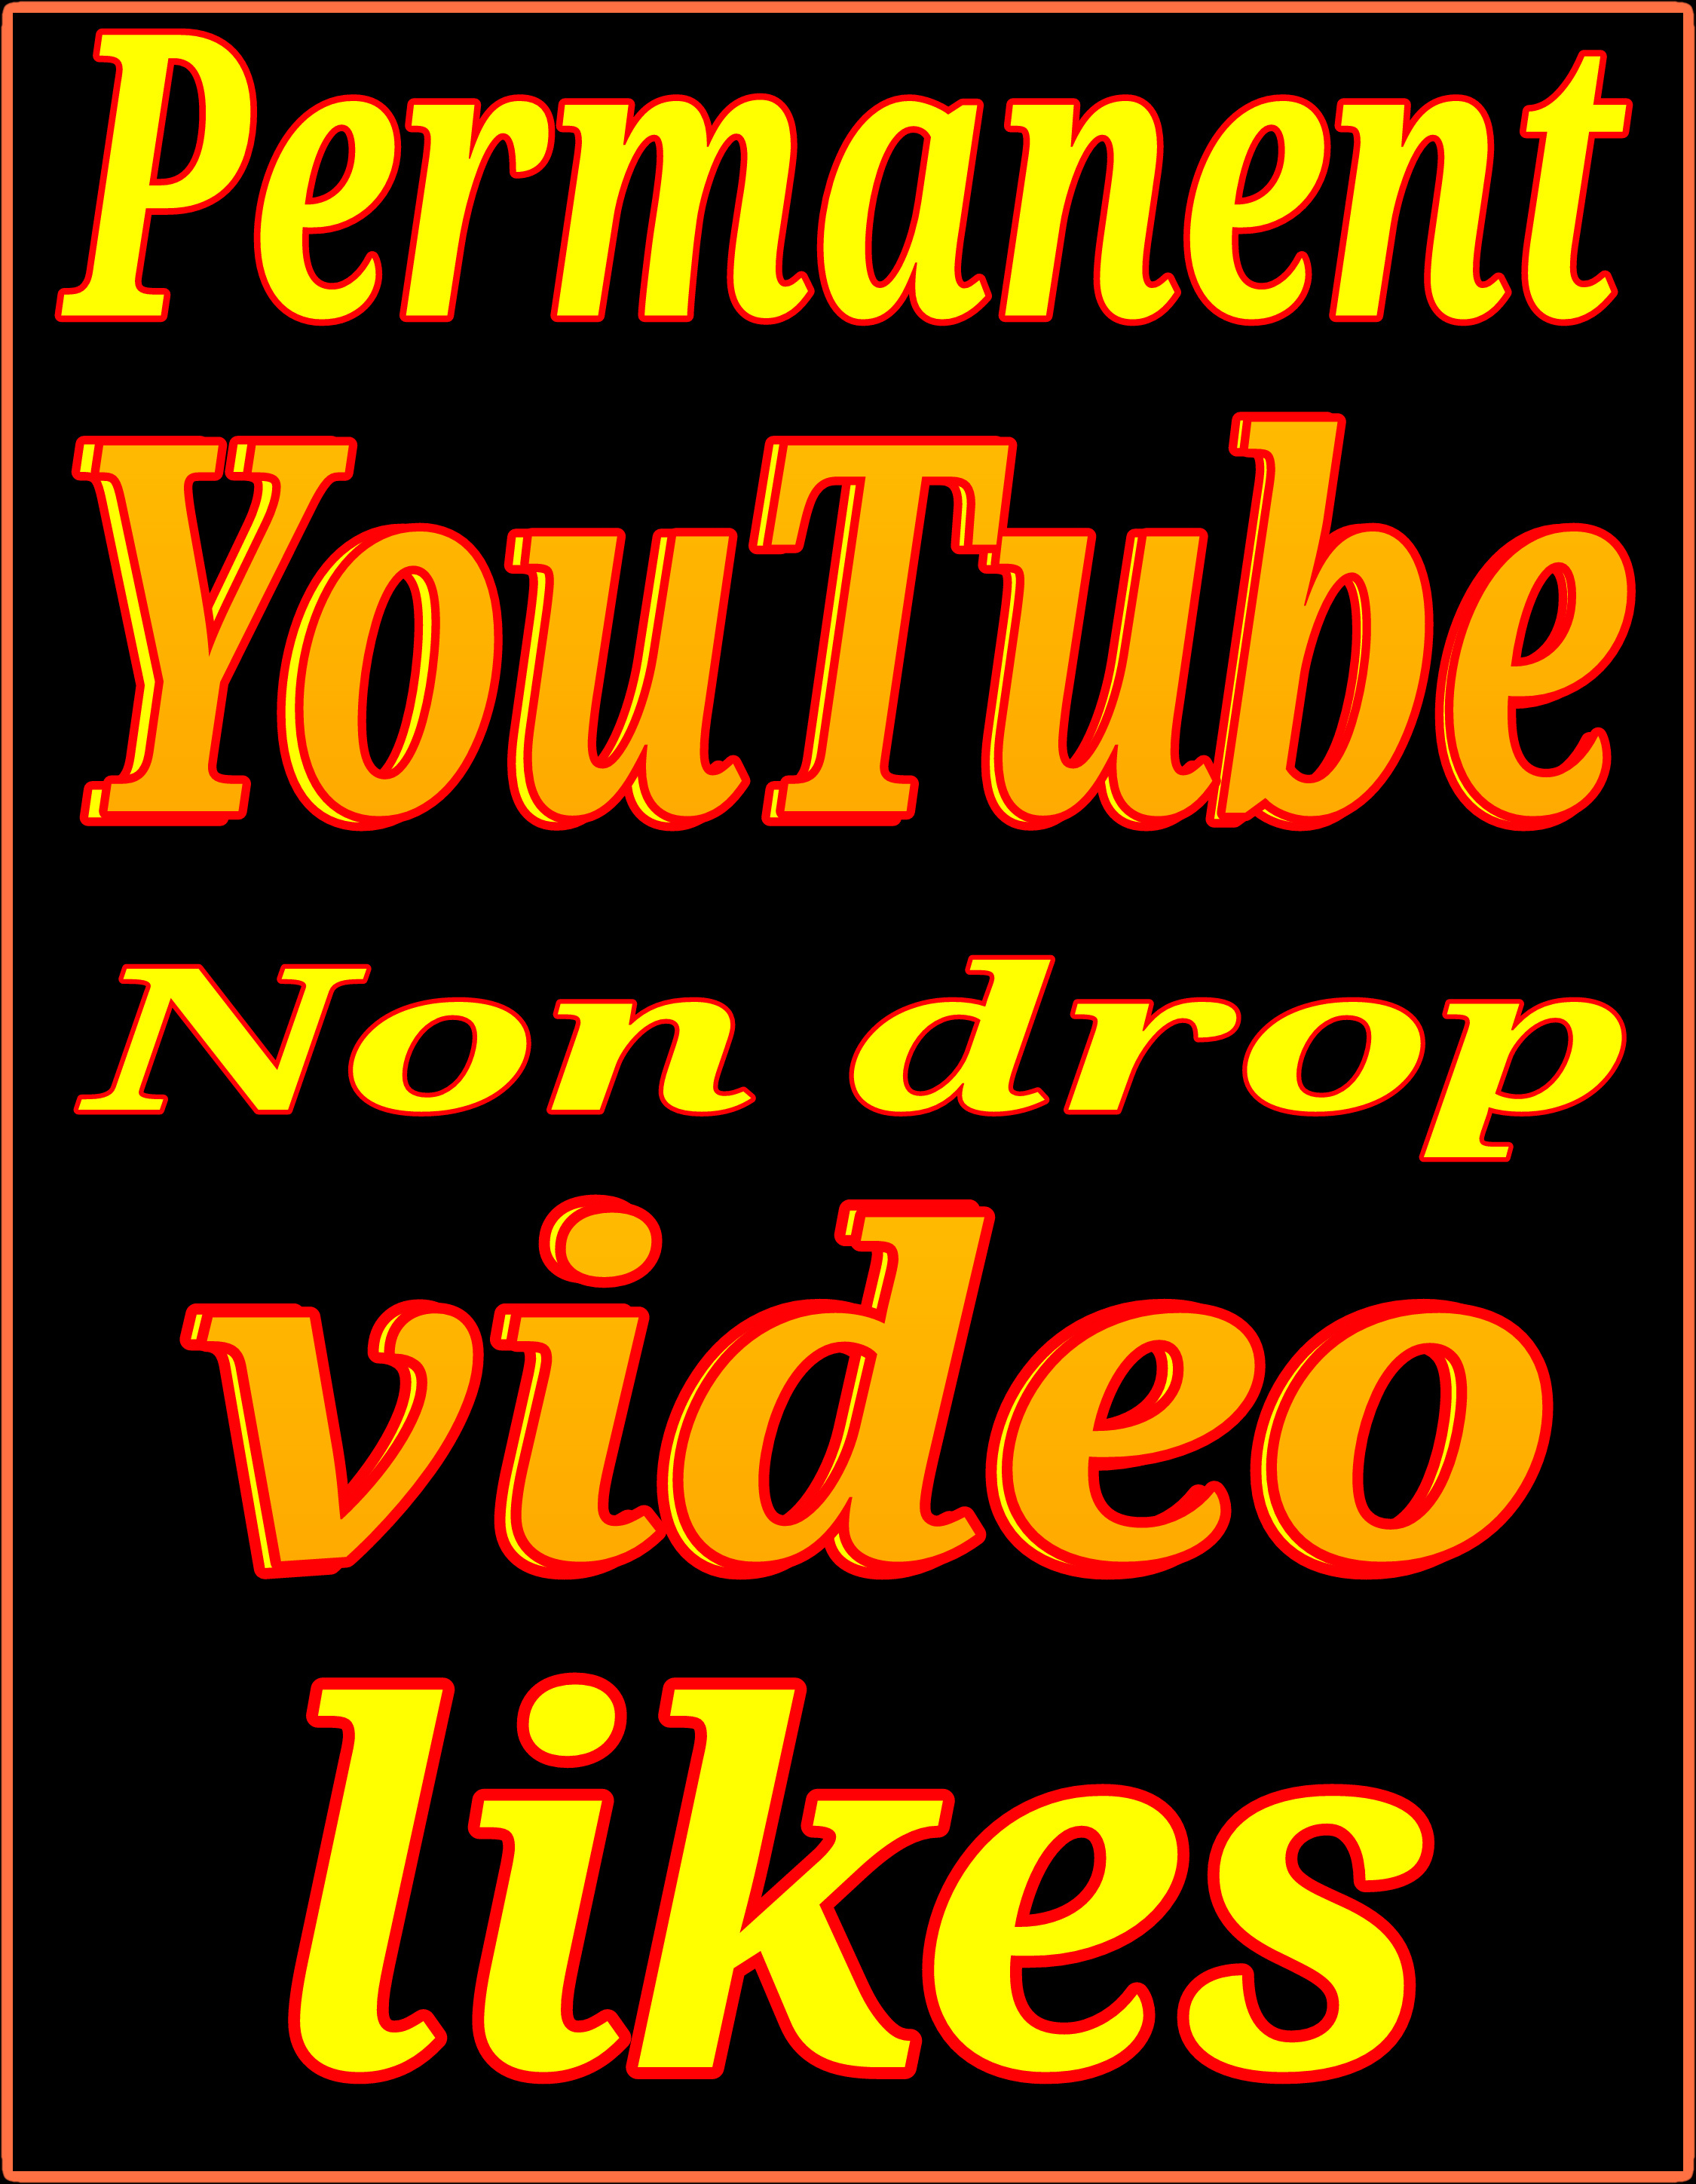 Organic YouTube video marketing fast delivery within 24-48 hours